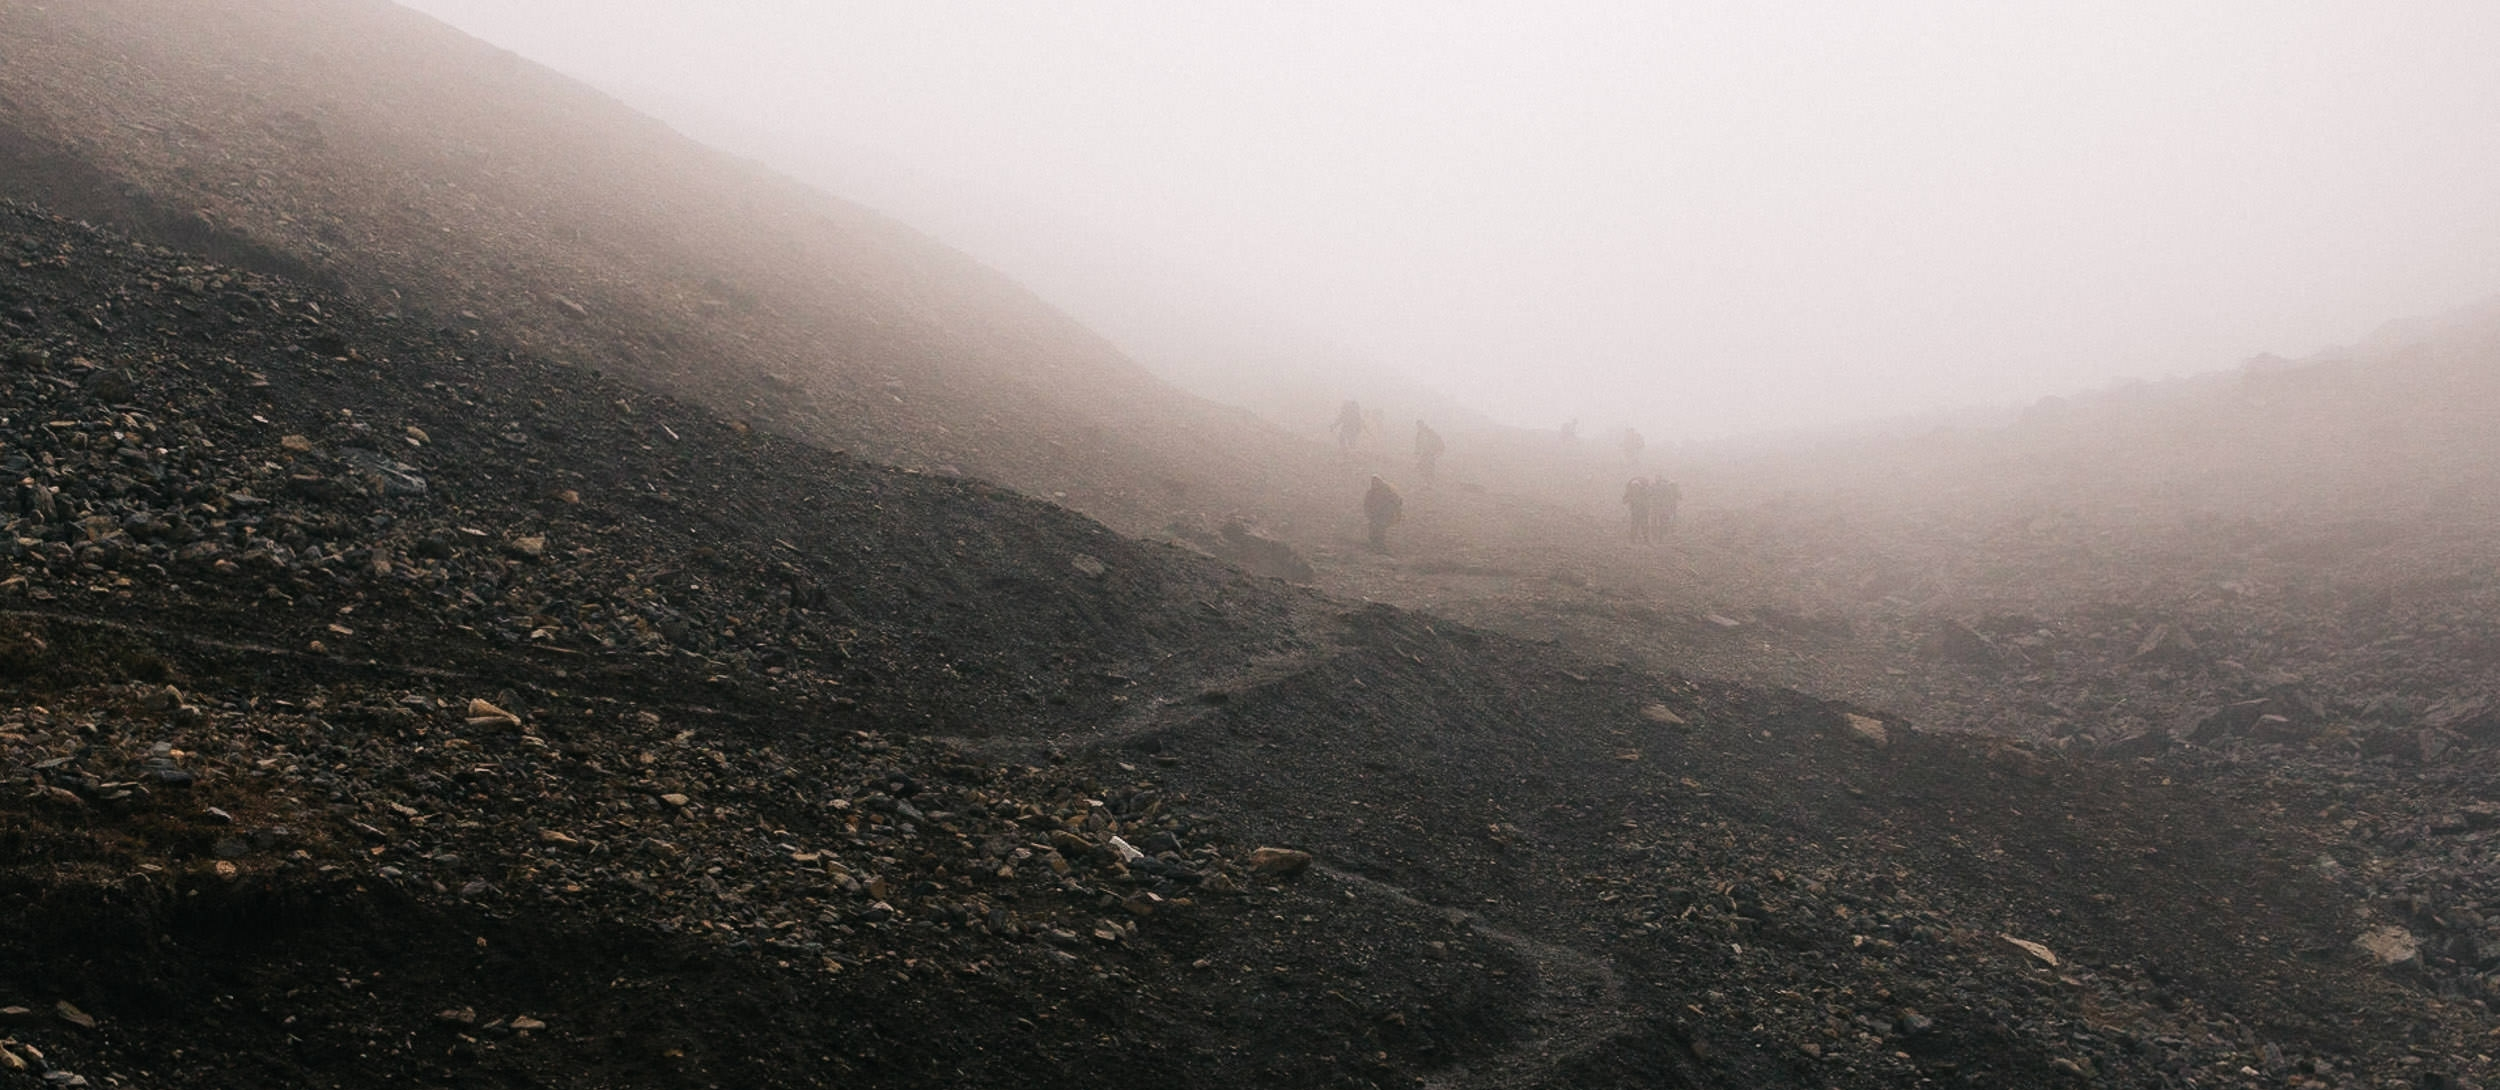 A group of porters descend the Thorong-La Pass through the mist.